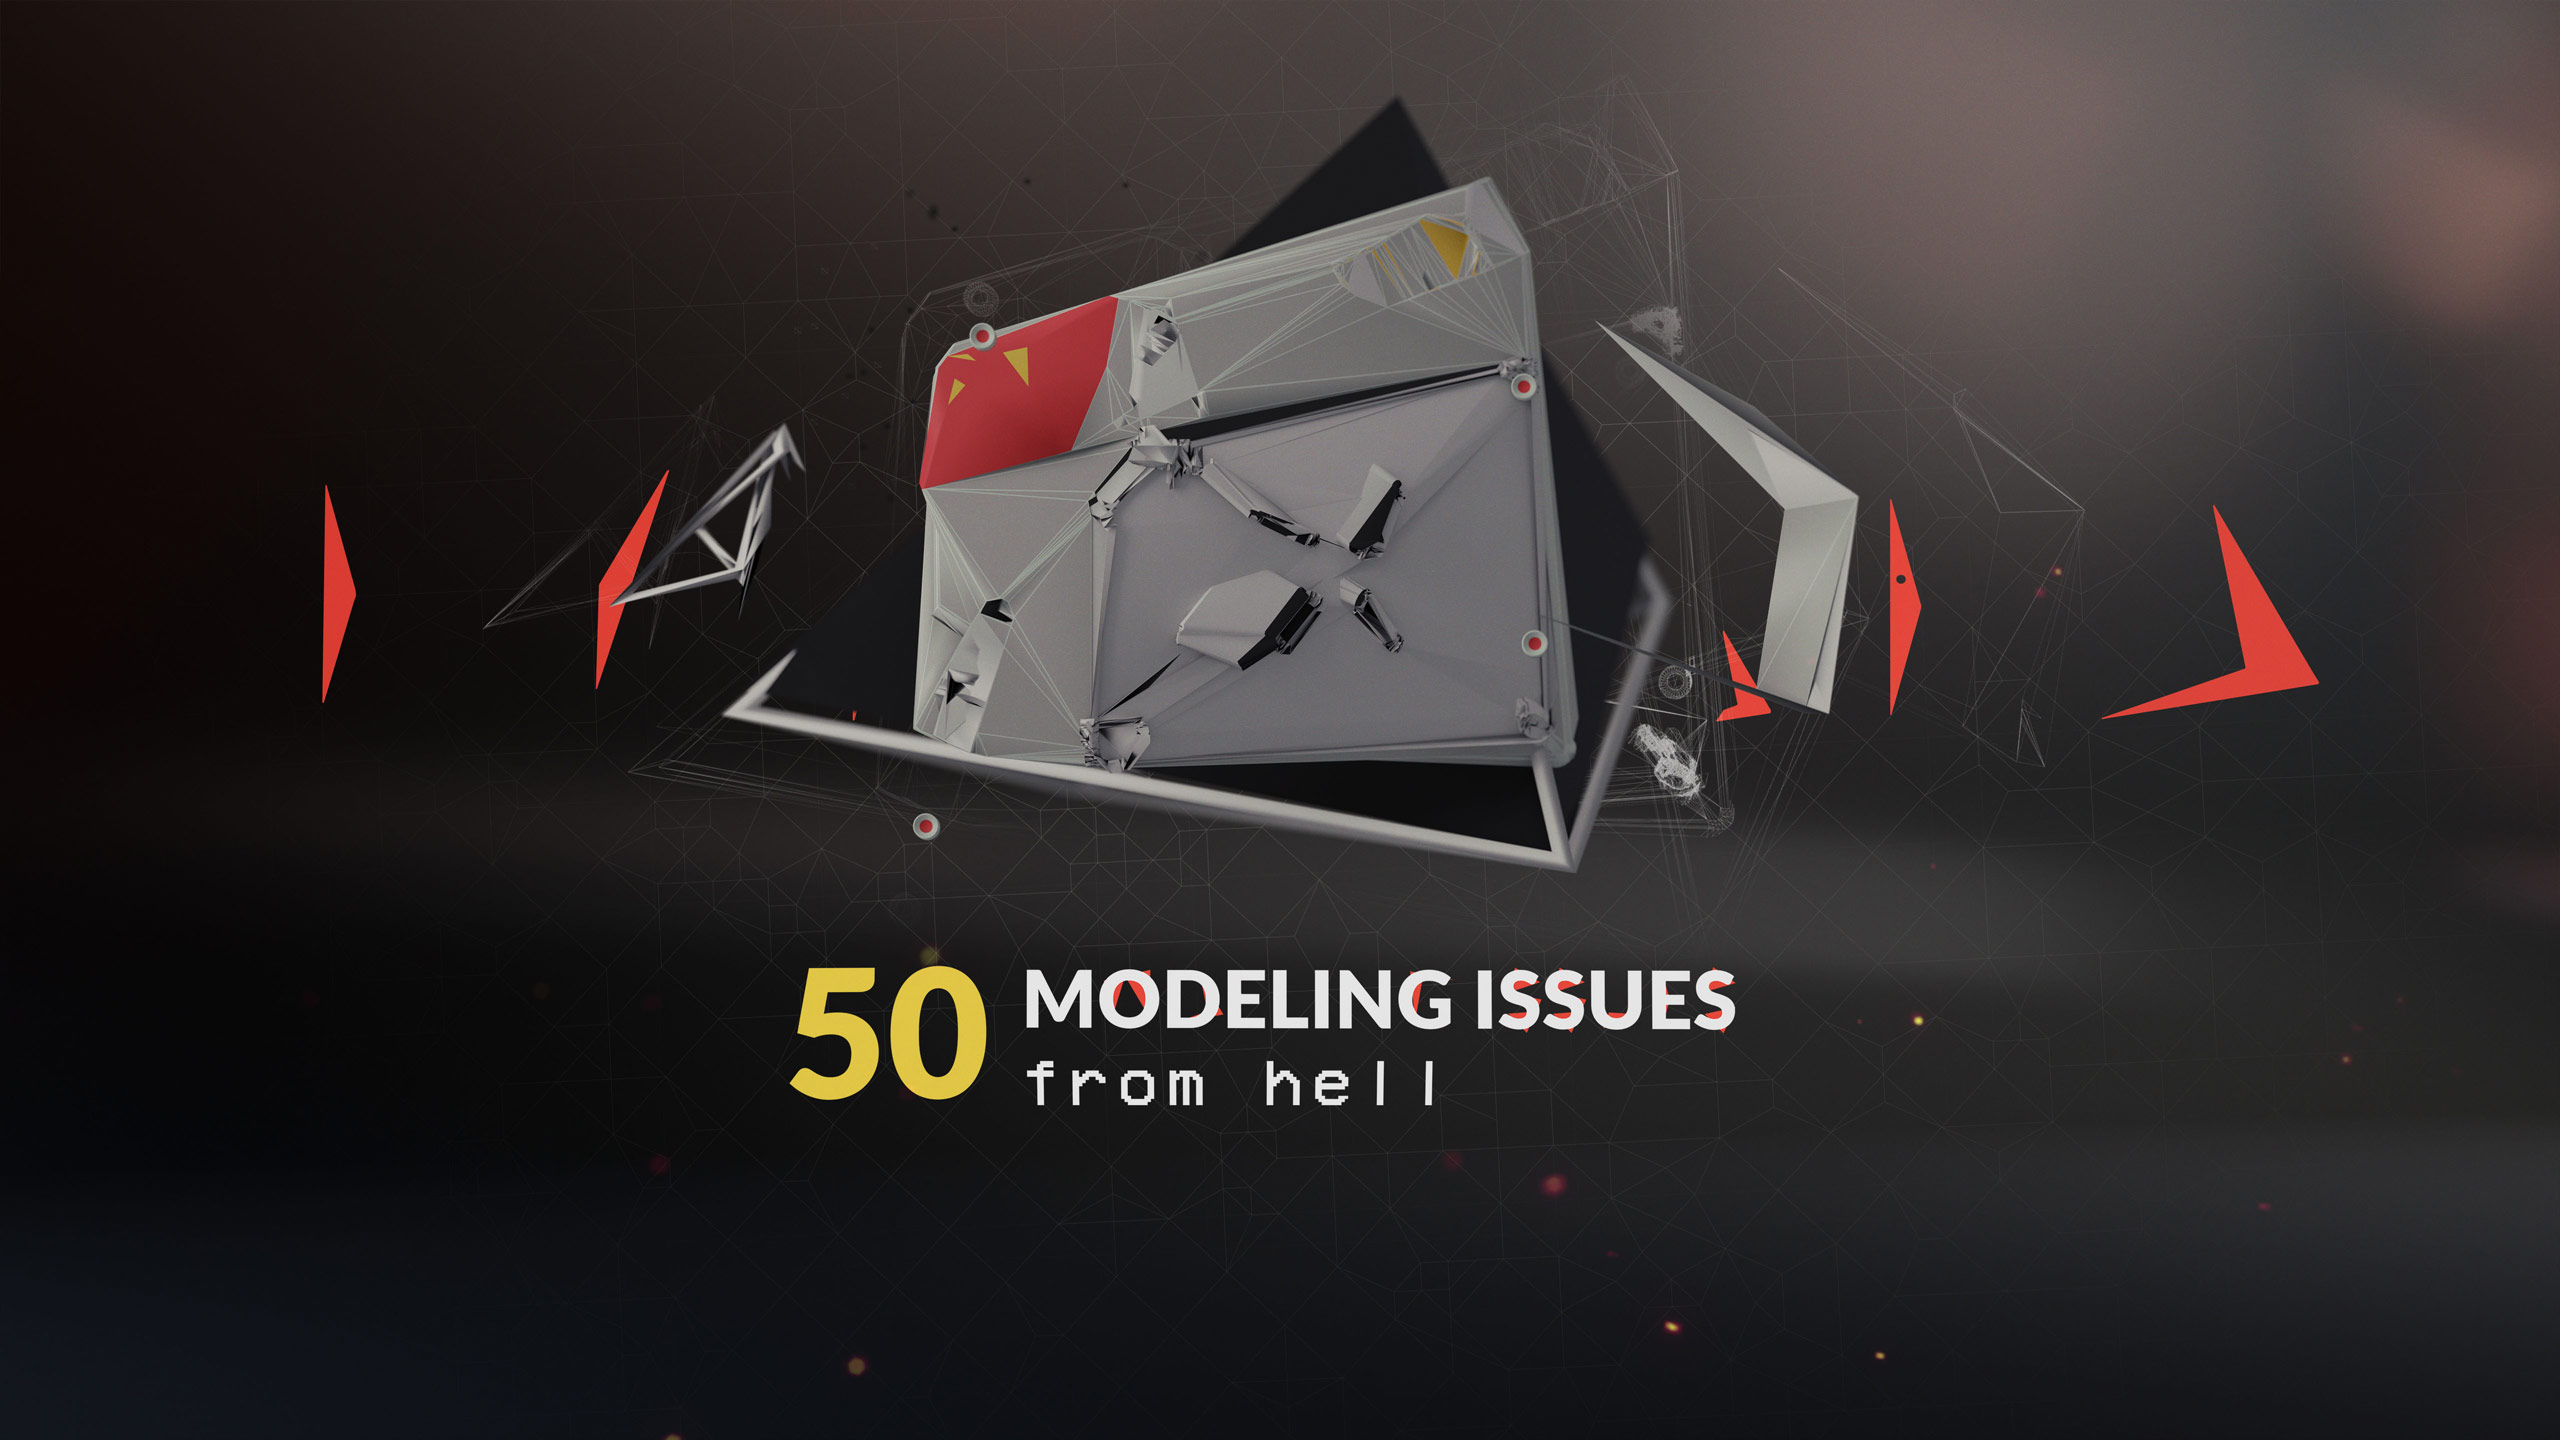 50 modeling issues from hell